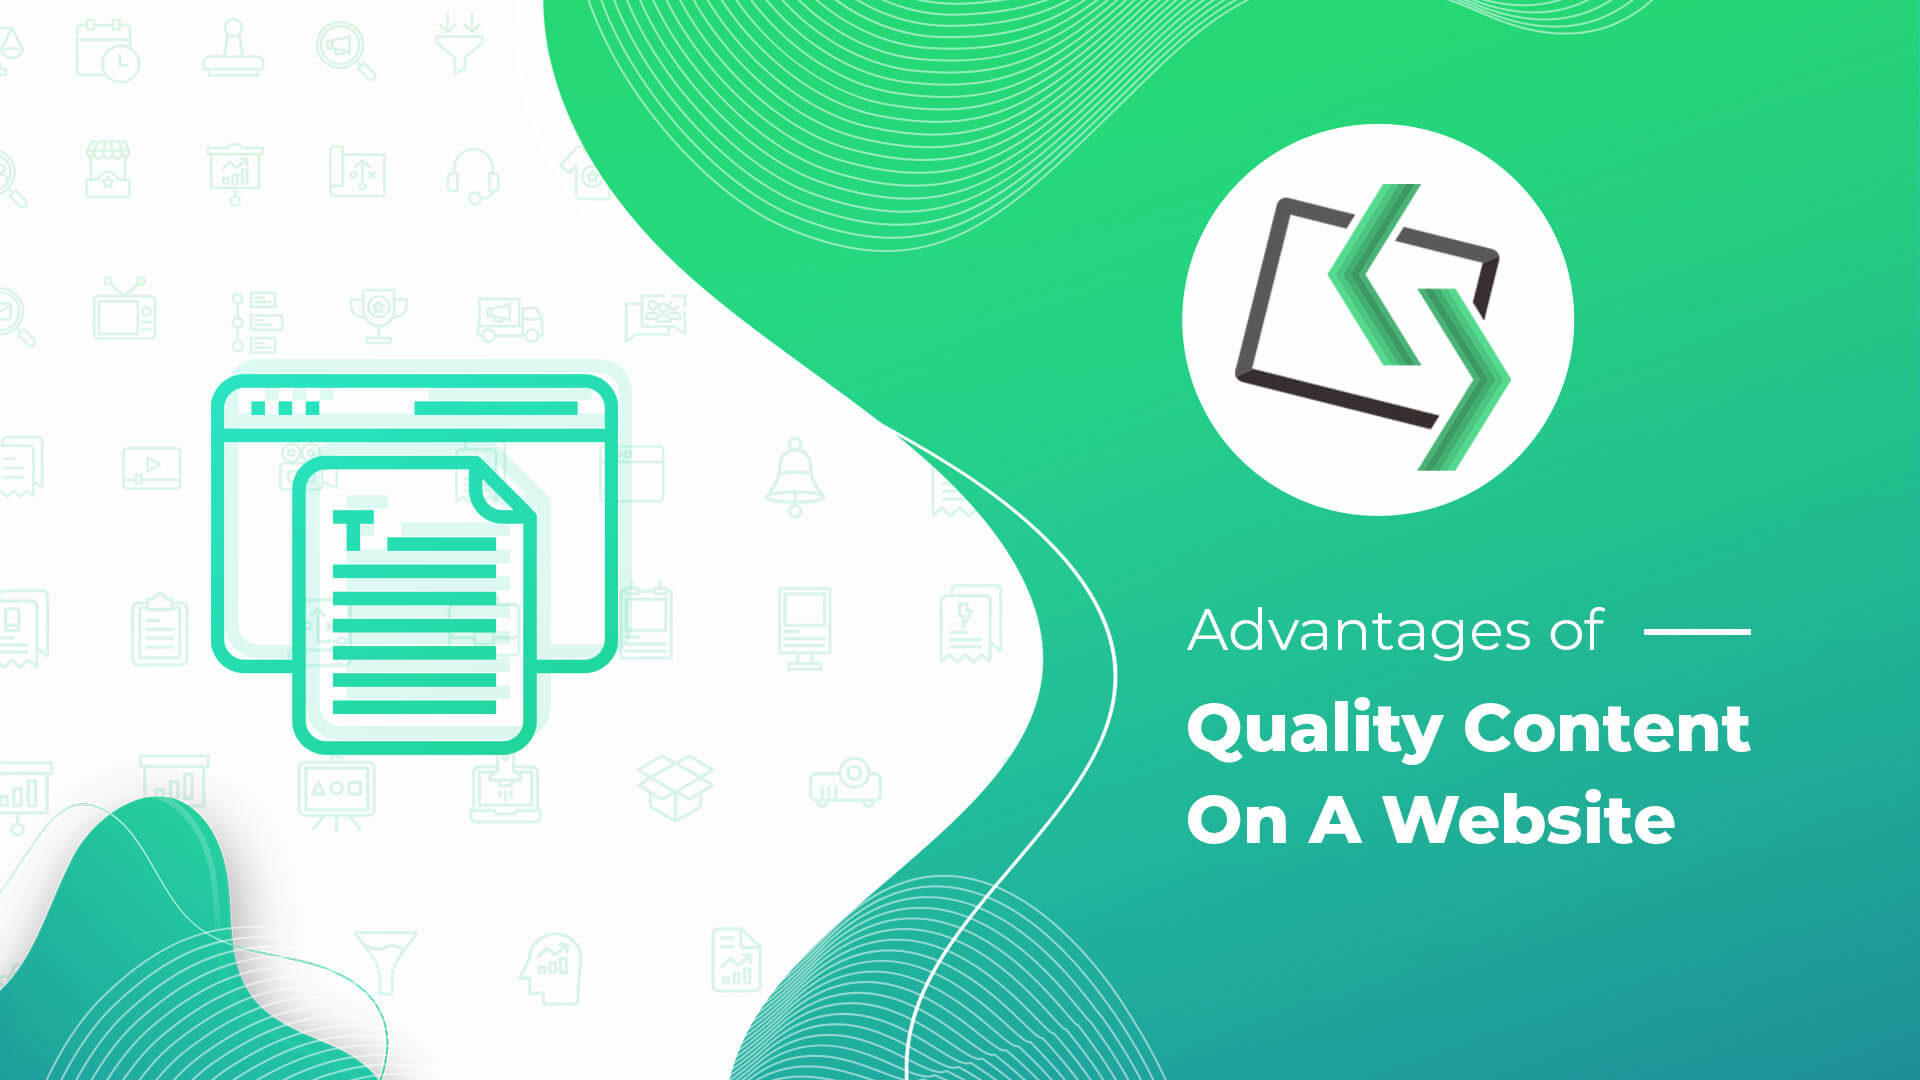 Top Advantages of Having Quality Content On a Website